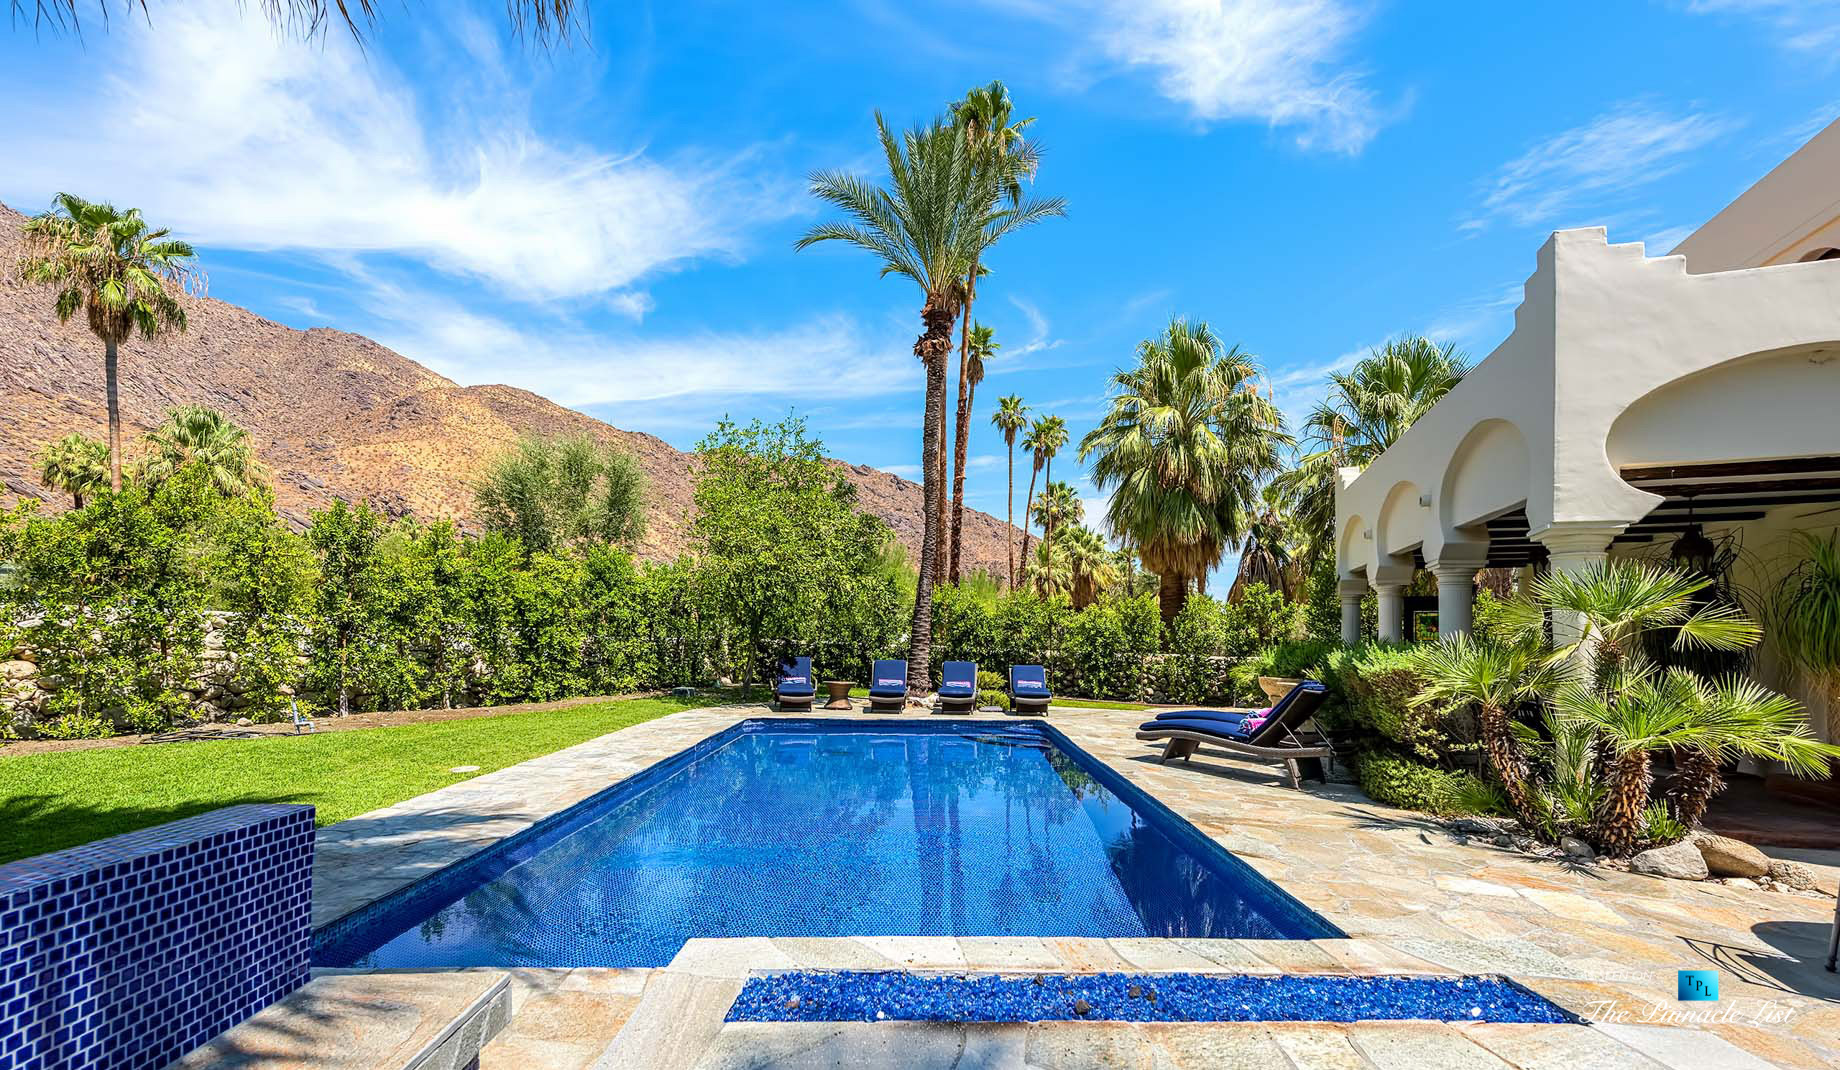 466 S Patencio Rd, Palm Springs, CA, USA